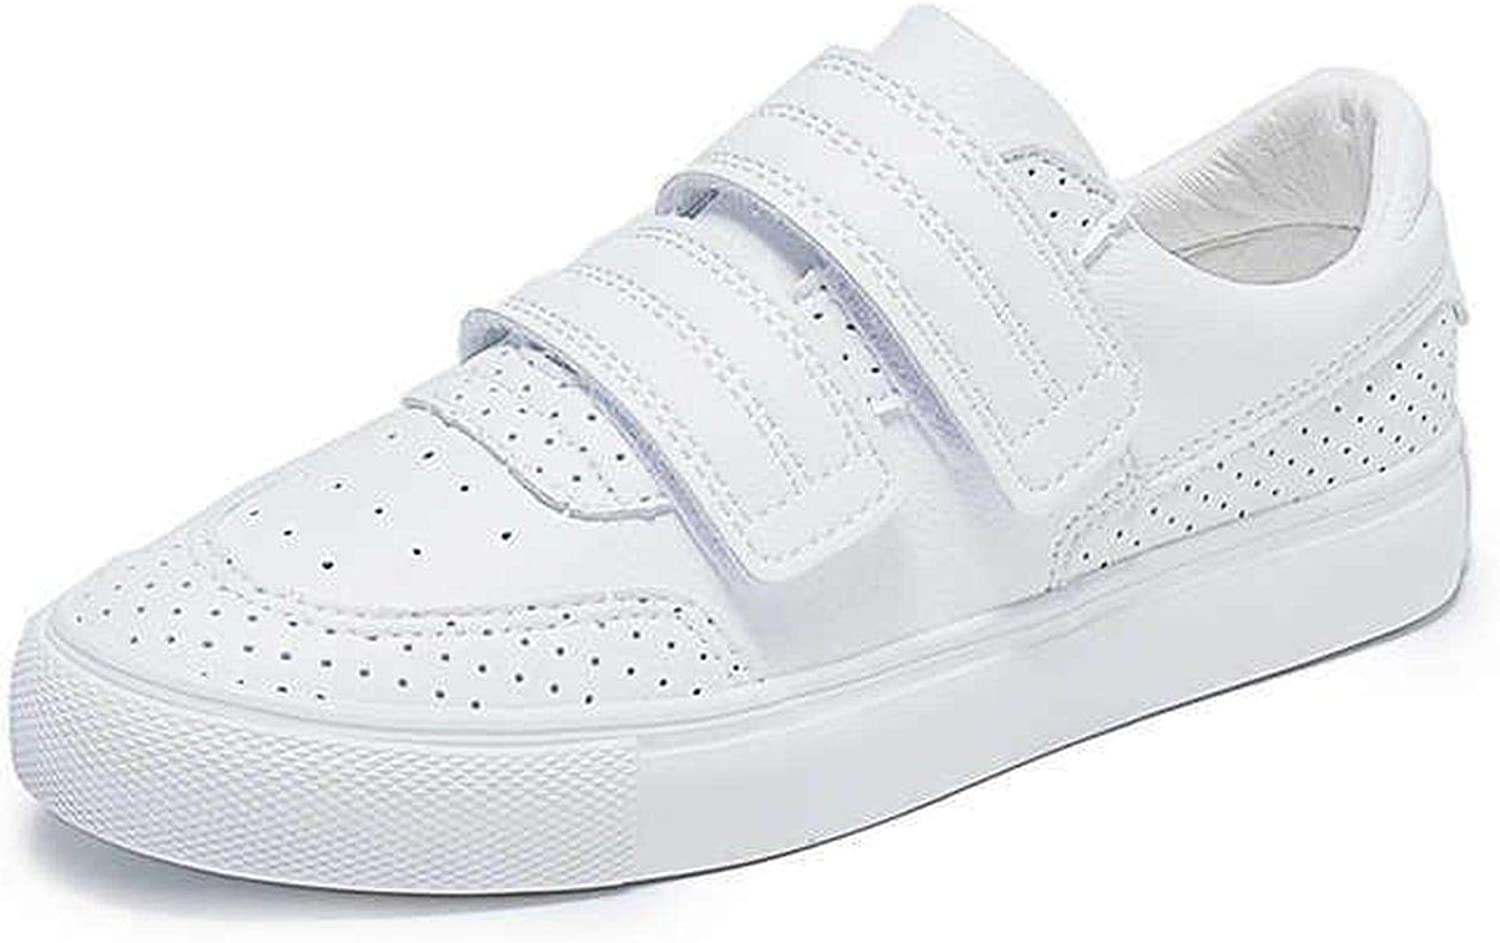 Women Fashion Vulcanized shoes Tenis Feminino shoes De women Slimming White Sneakers